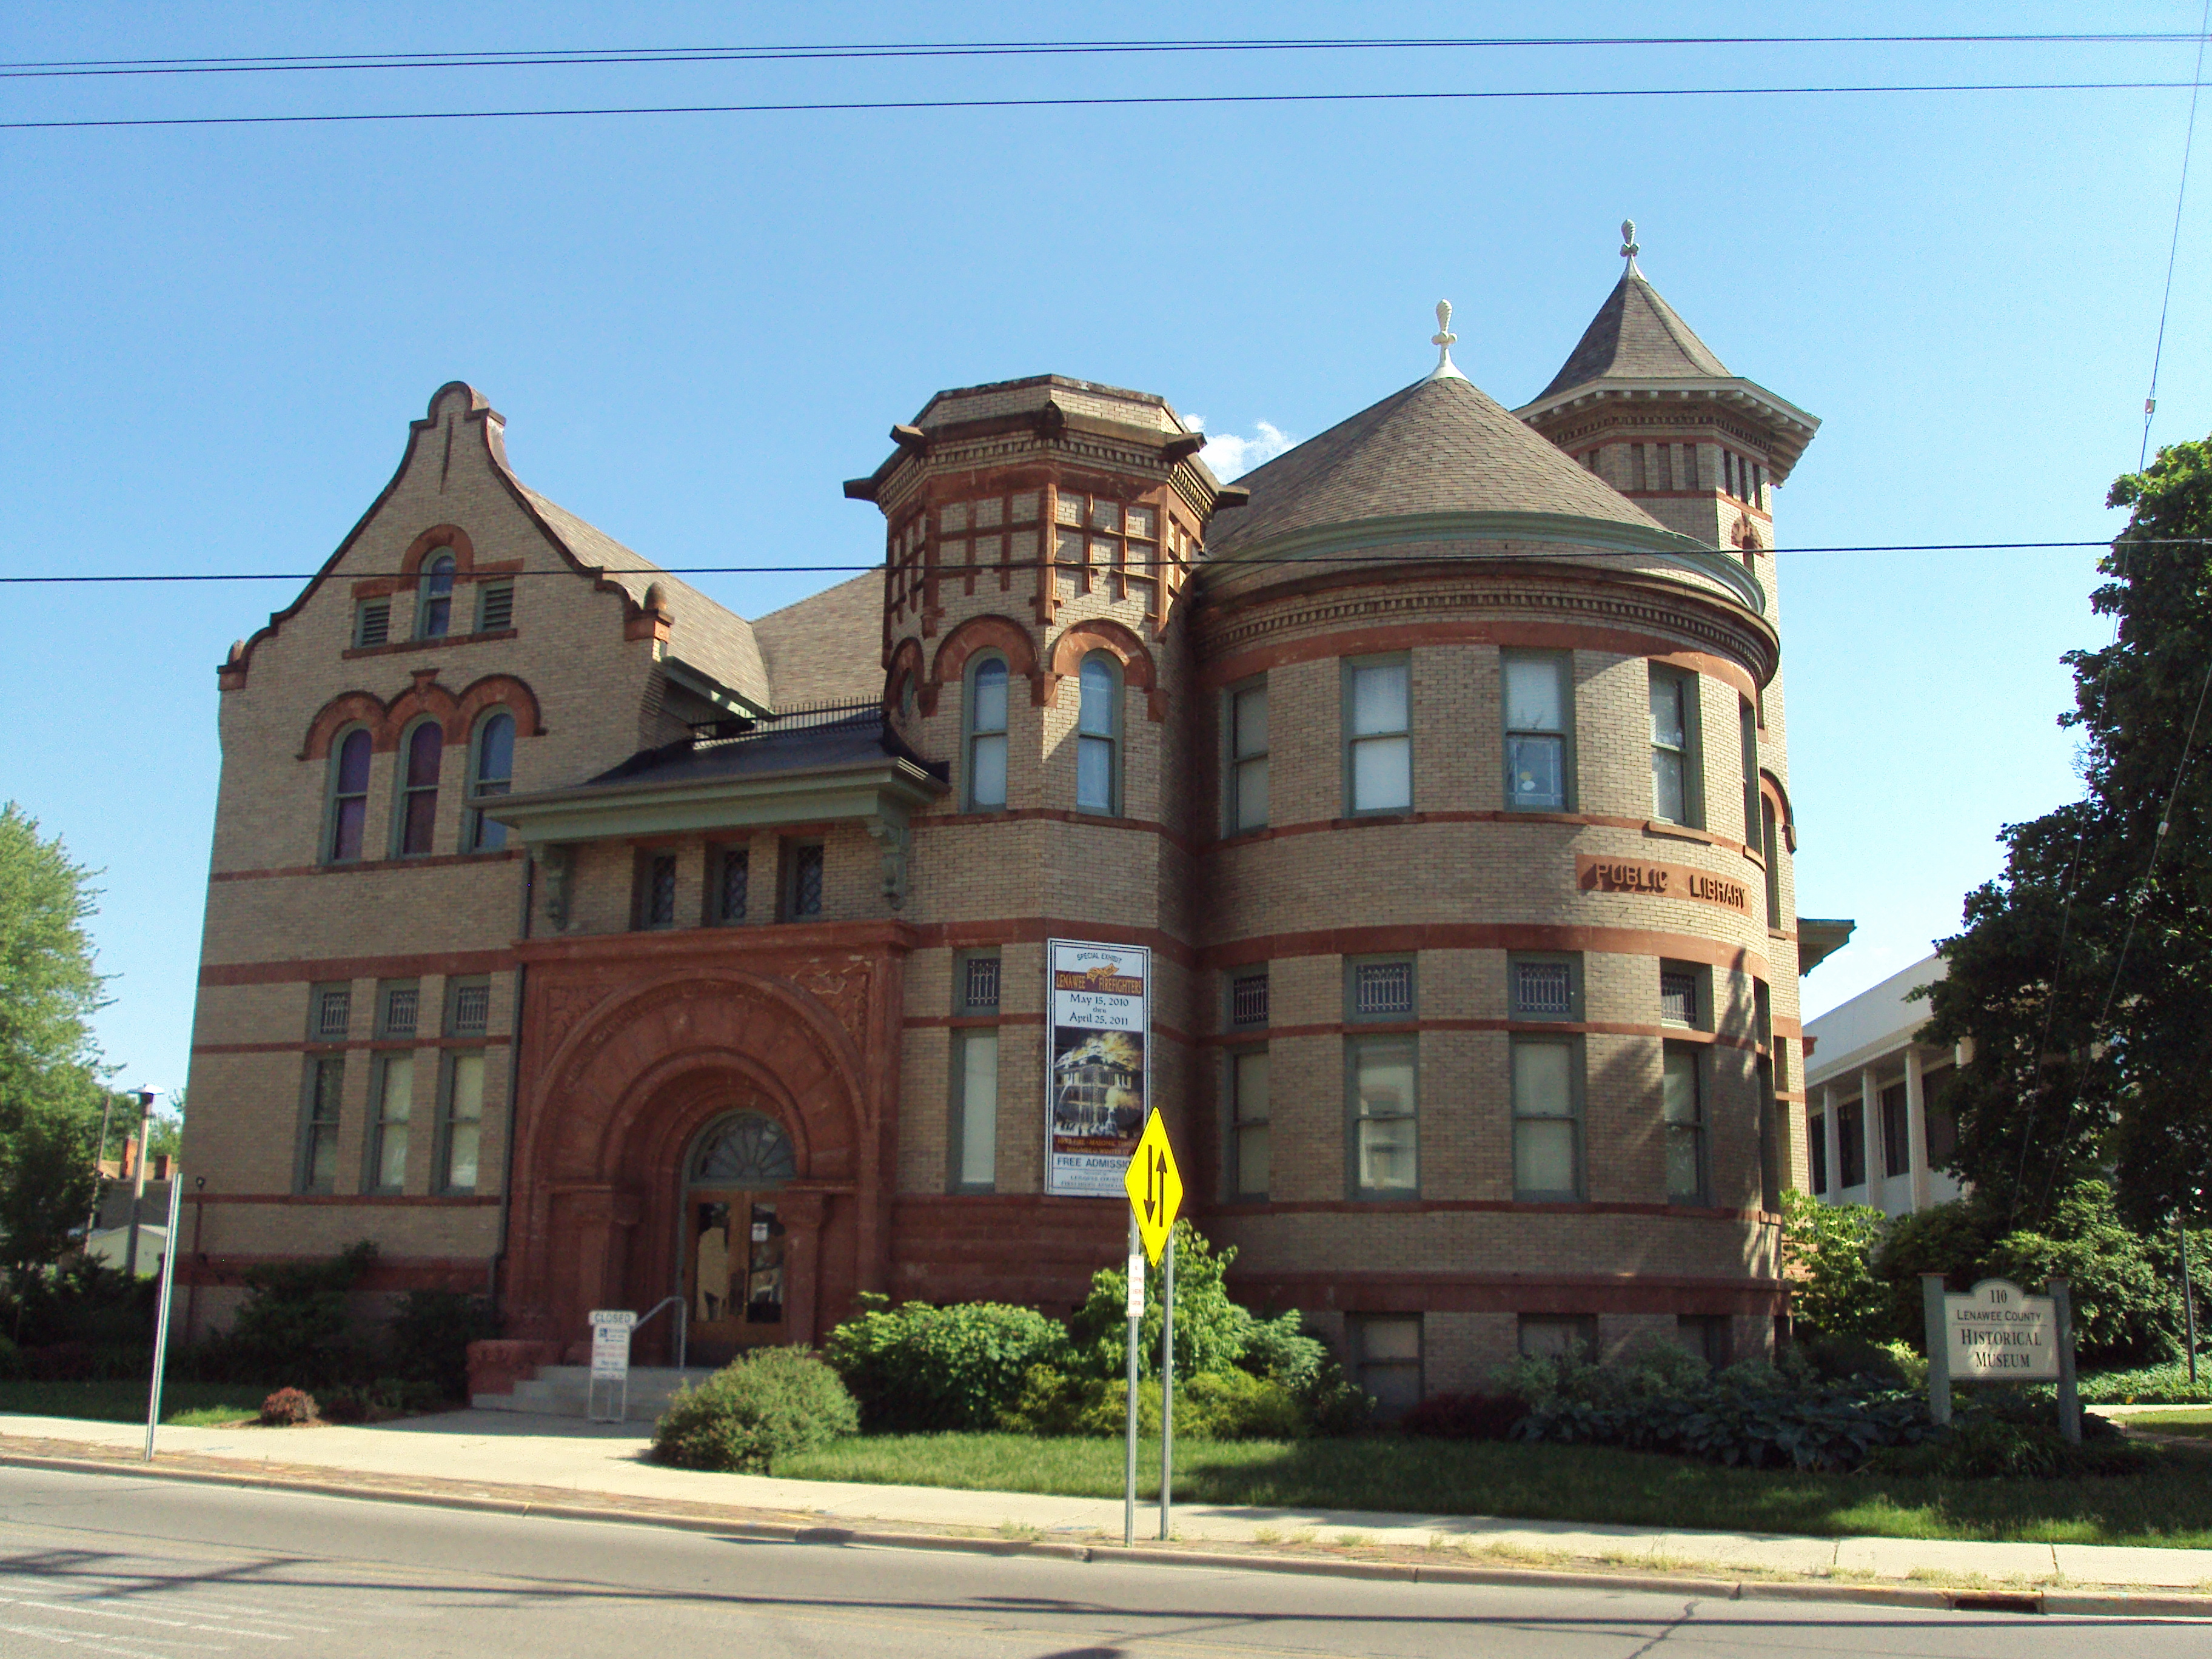 Next door to the old fire station & Michigan « Every County pezcame.com